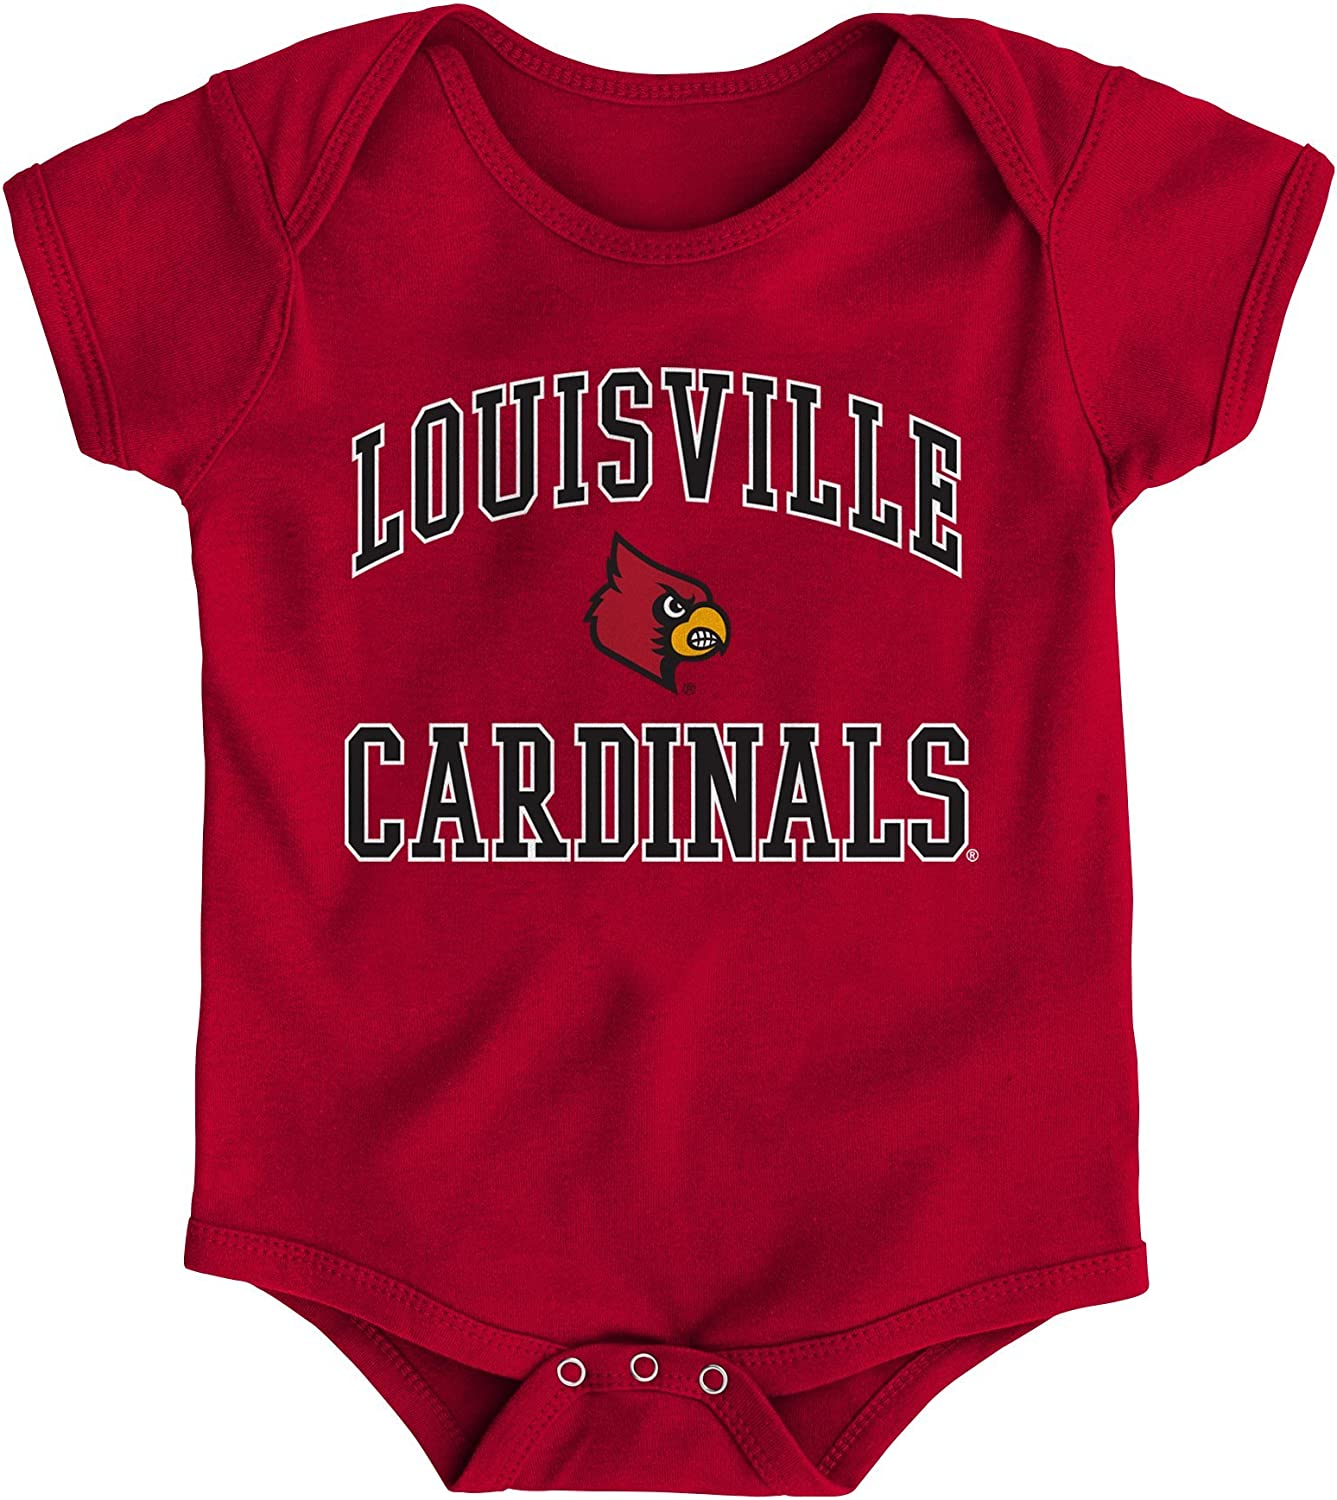 Gen 2 NCAA Unisex-Child Newborn /& Infant Primary Logo Bodysuit